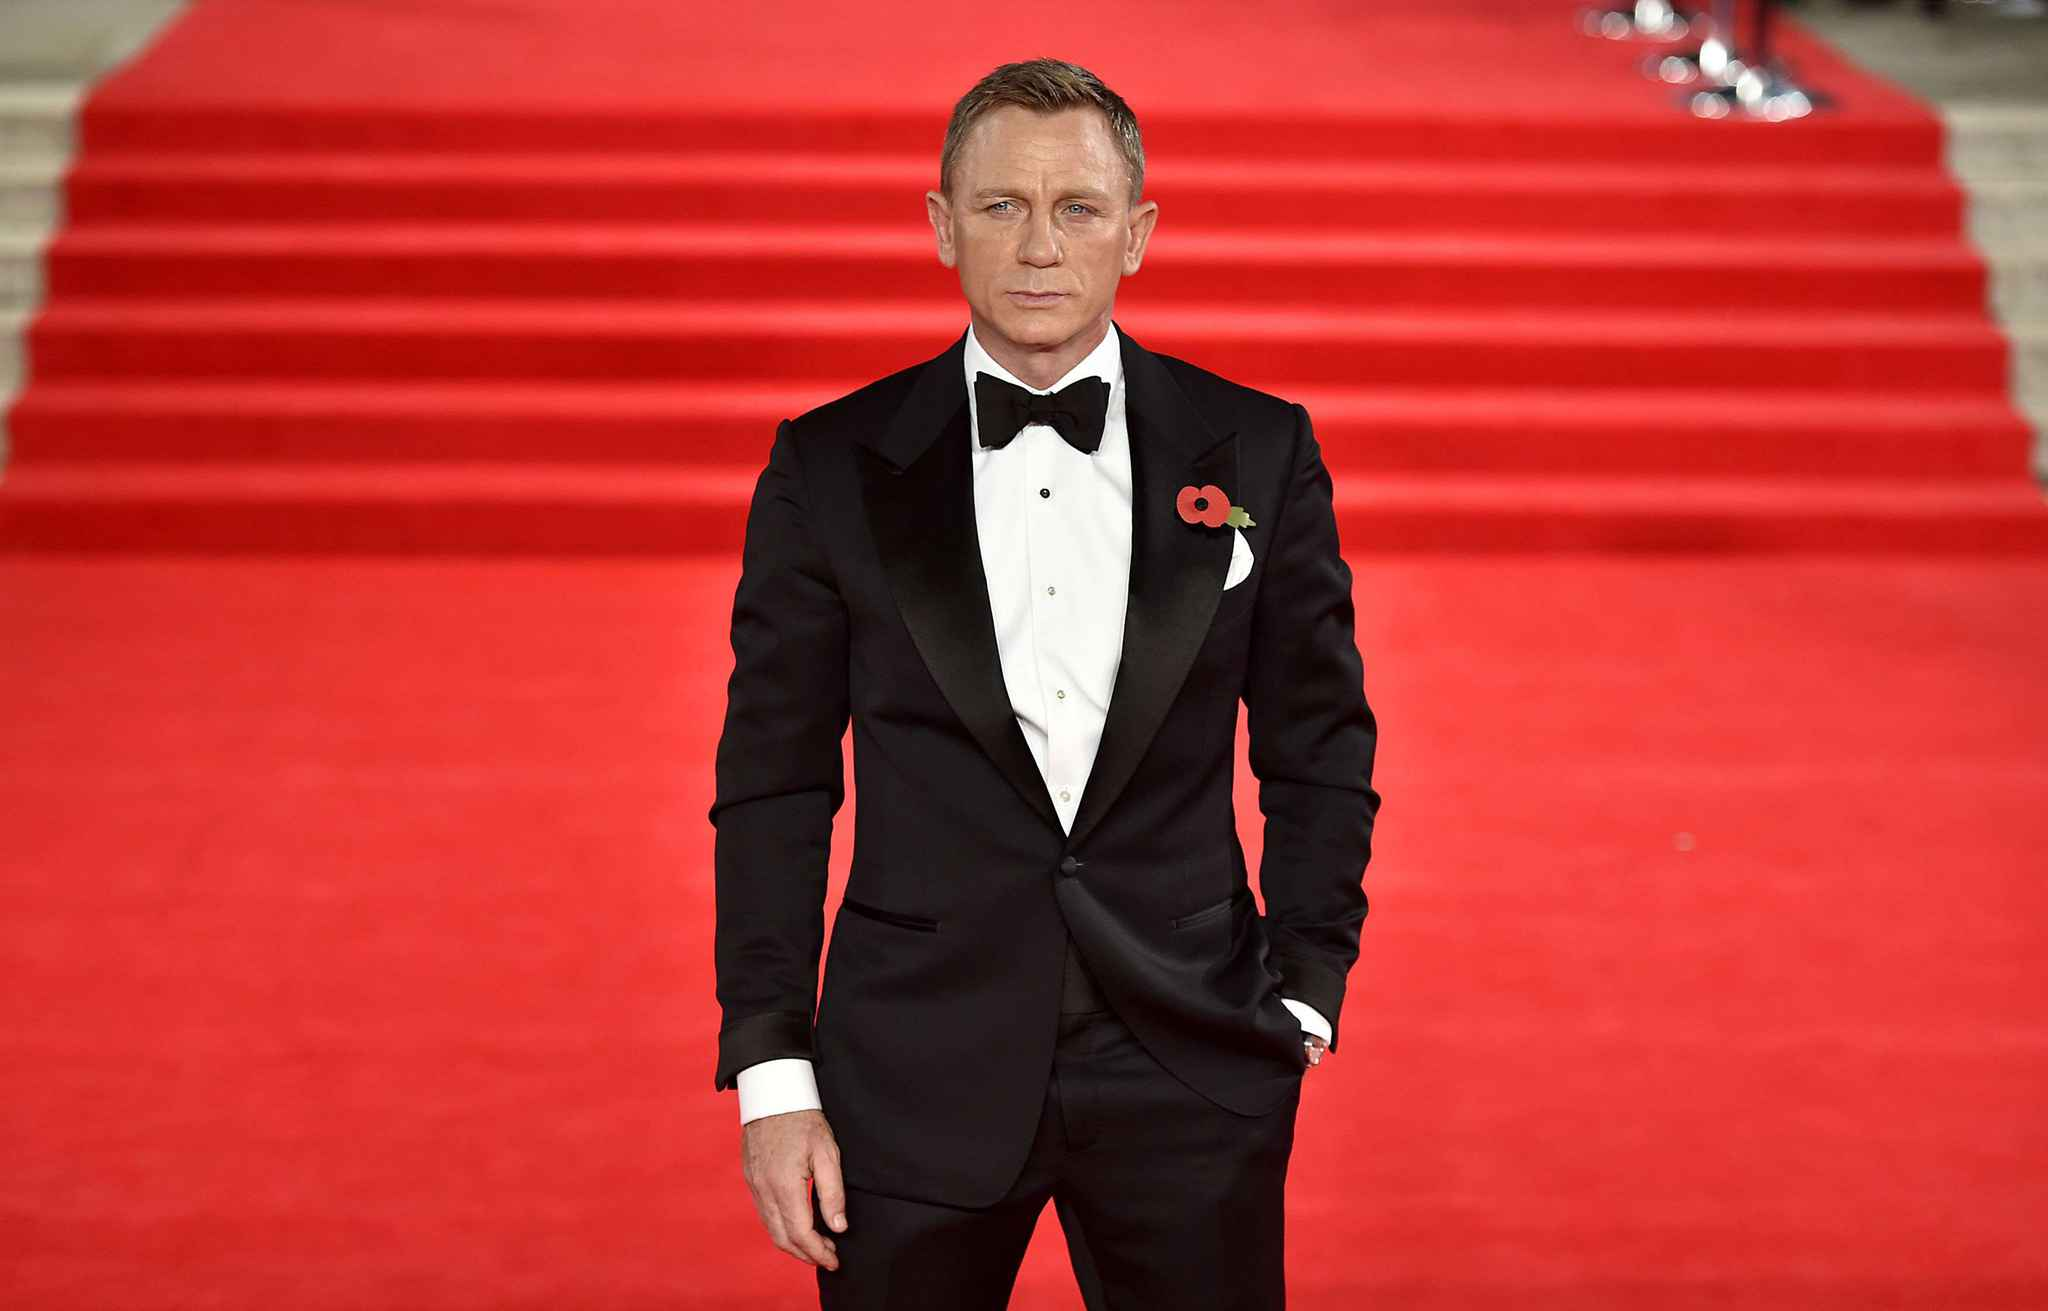 2048x1536-fit_daniel-craig-premiere-film-007-spectre-26-octobre-2015-royal-albert-hall-londres